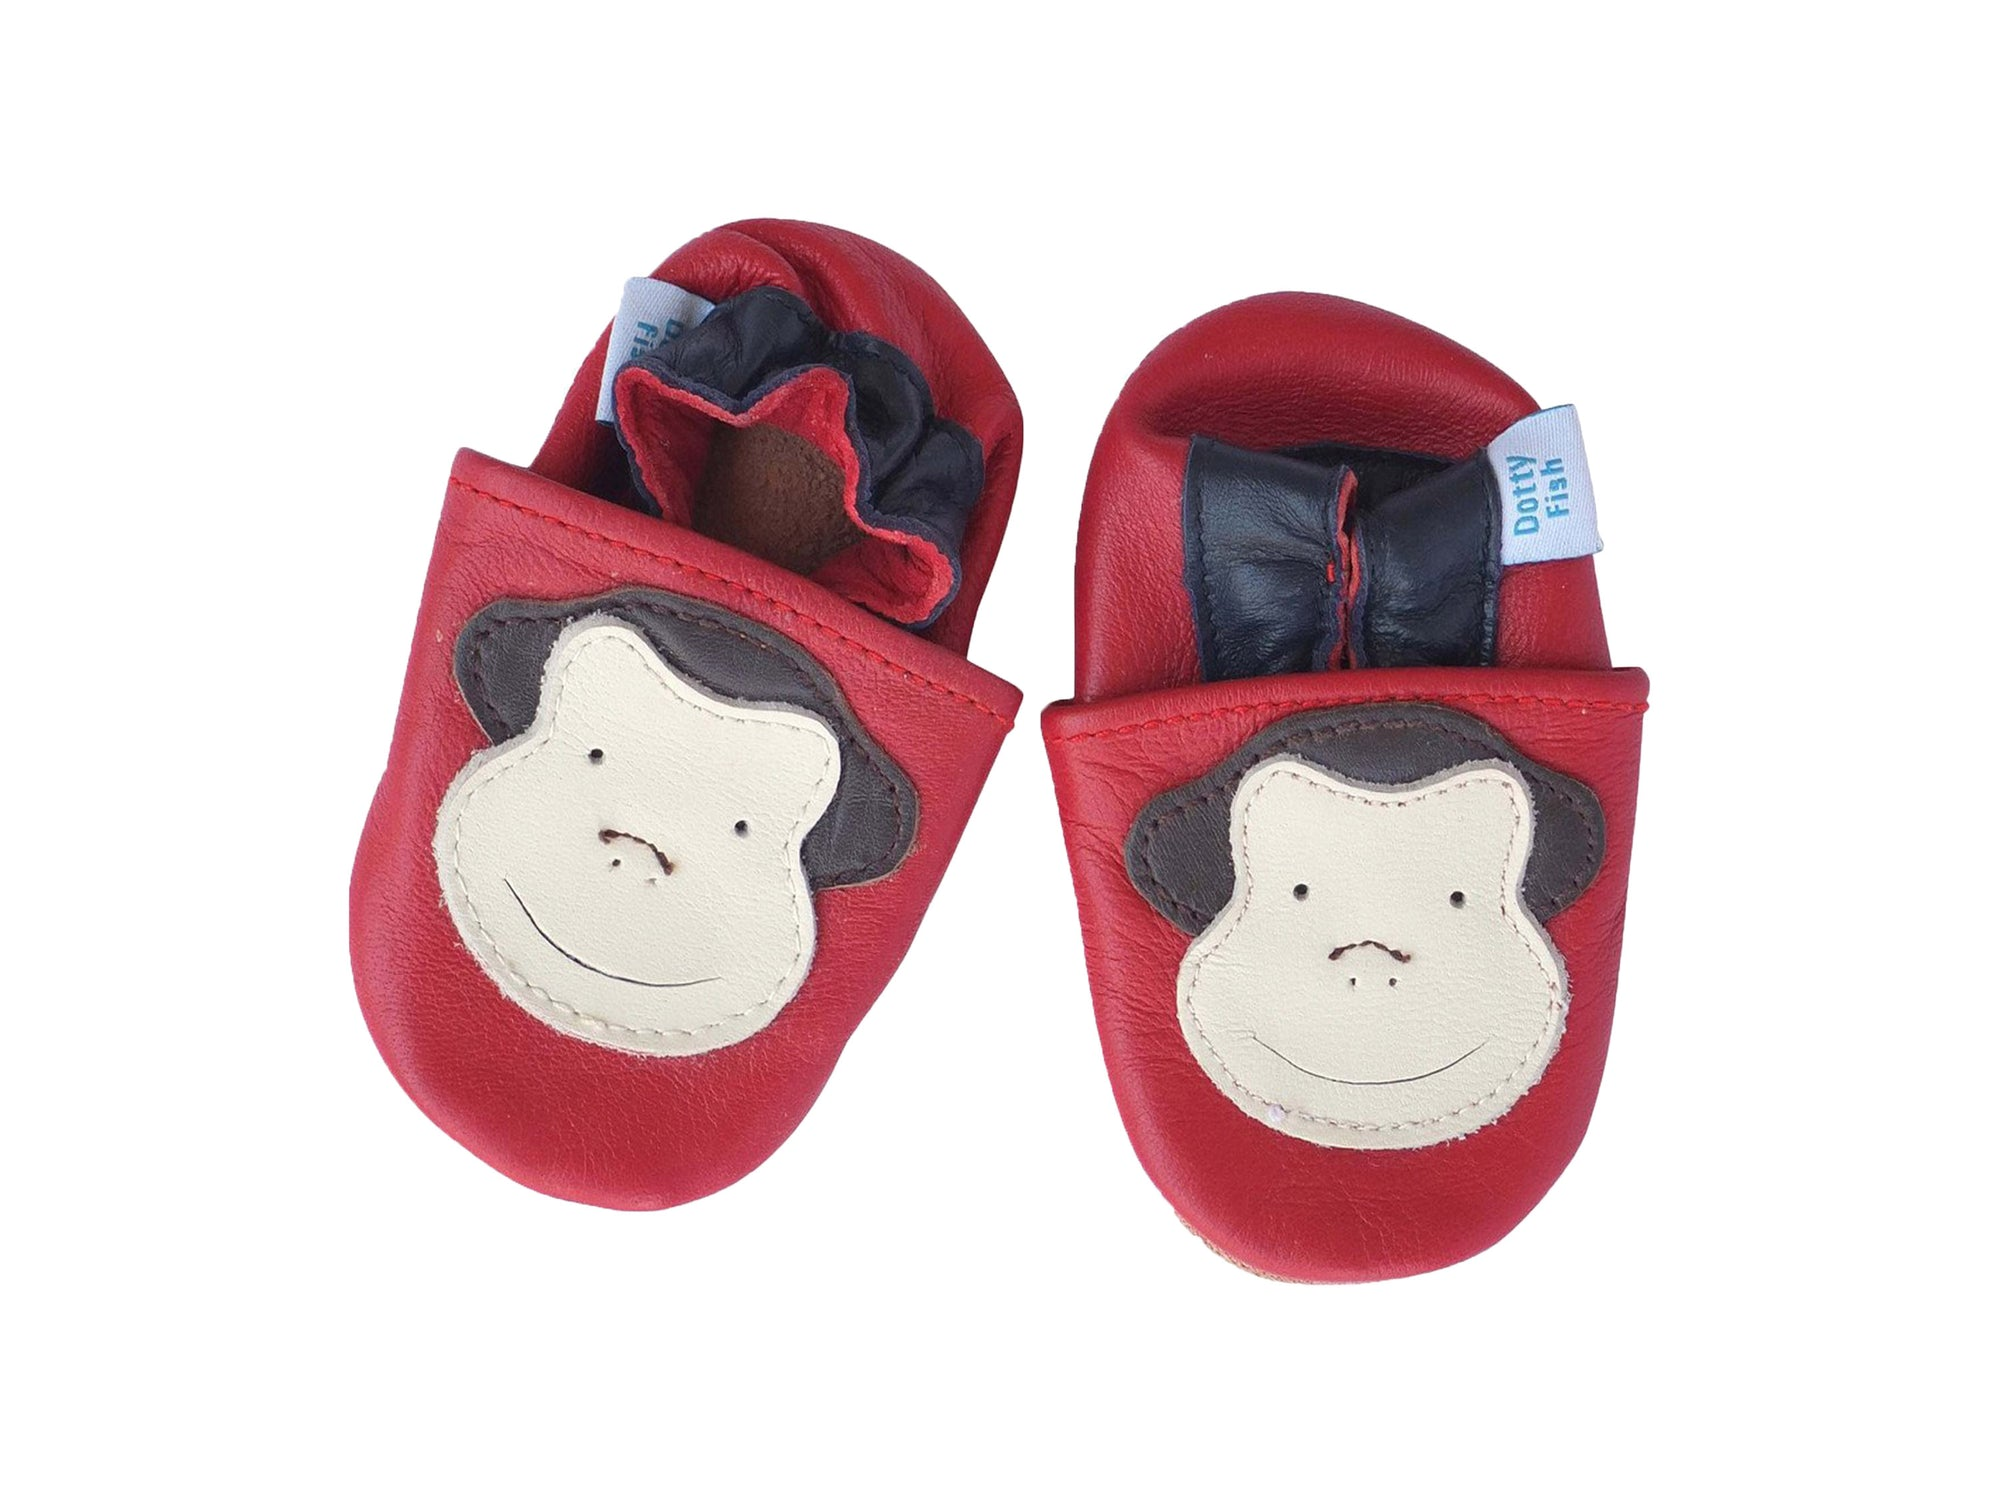 Unisex Soft Leather Elasticised Pram Shoes - Red Monkey